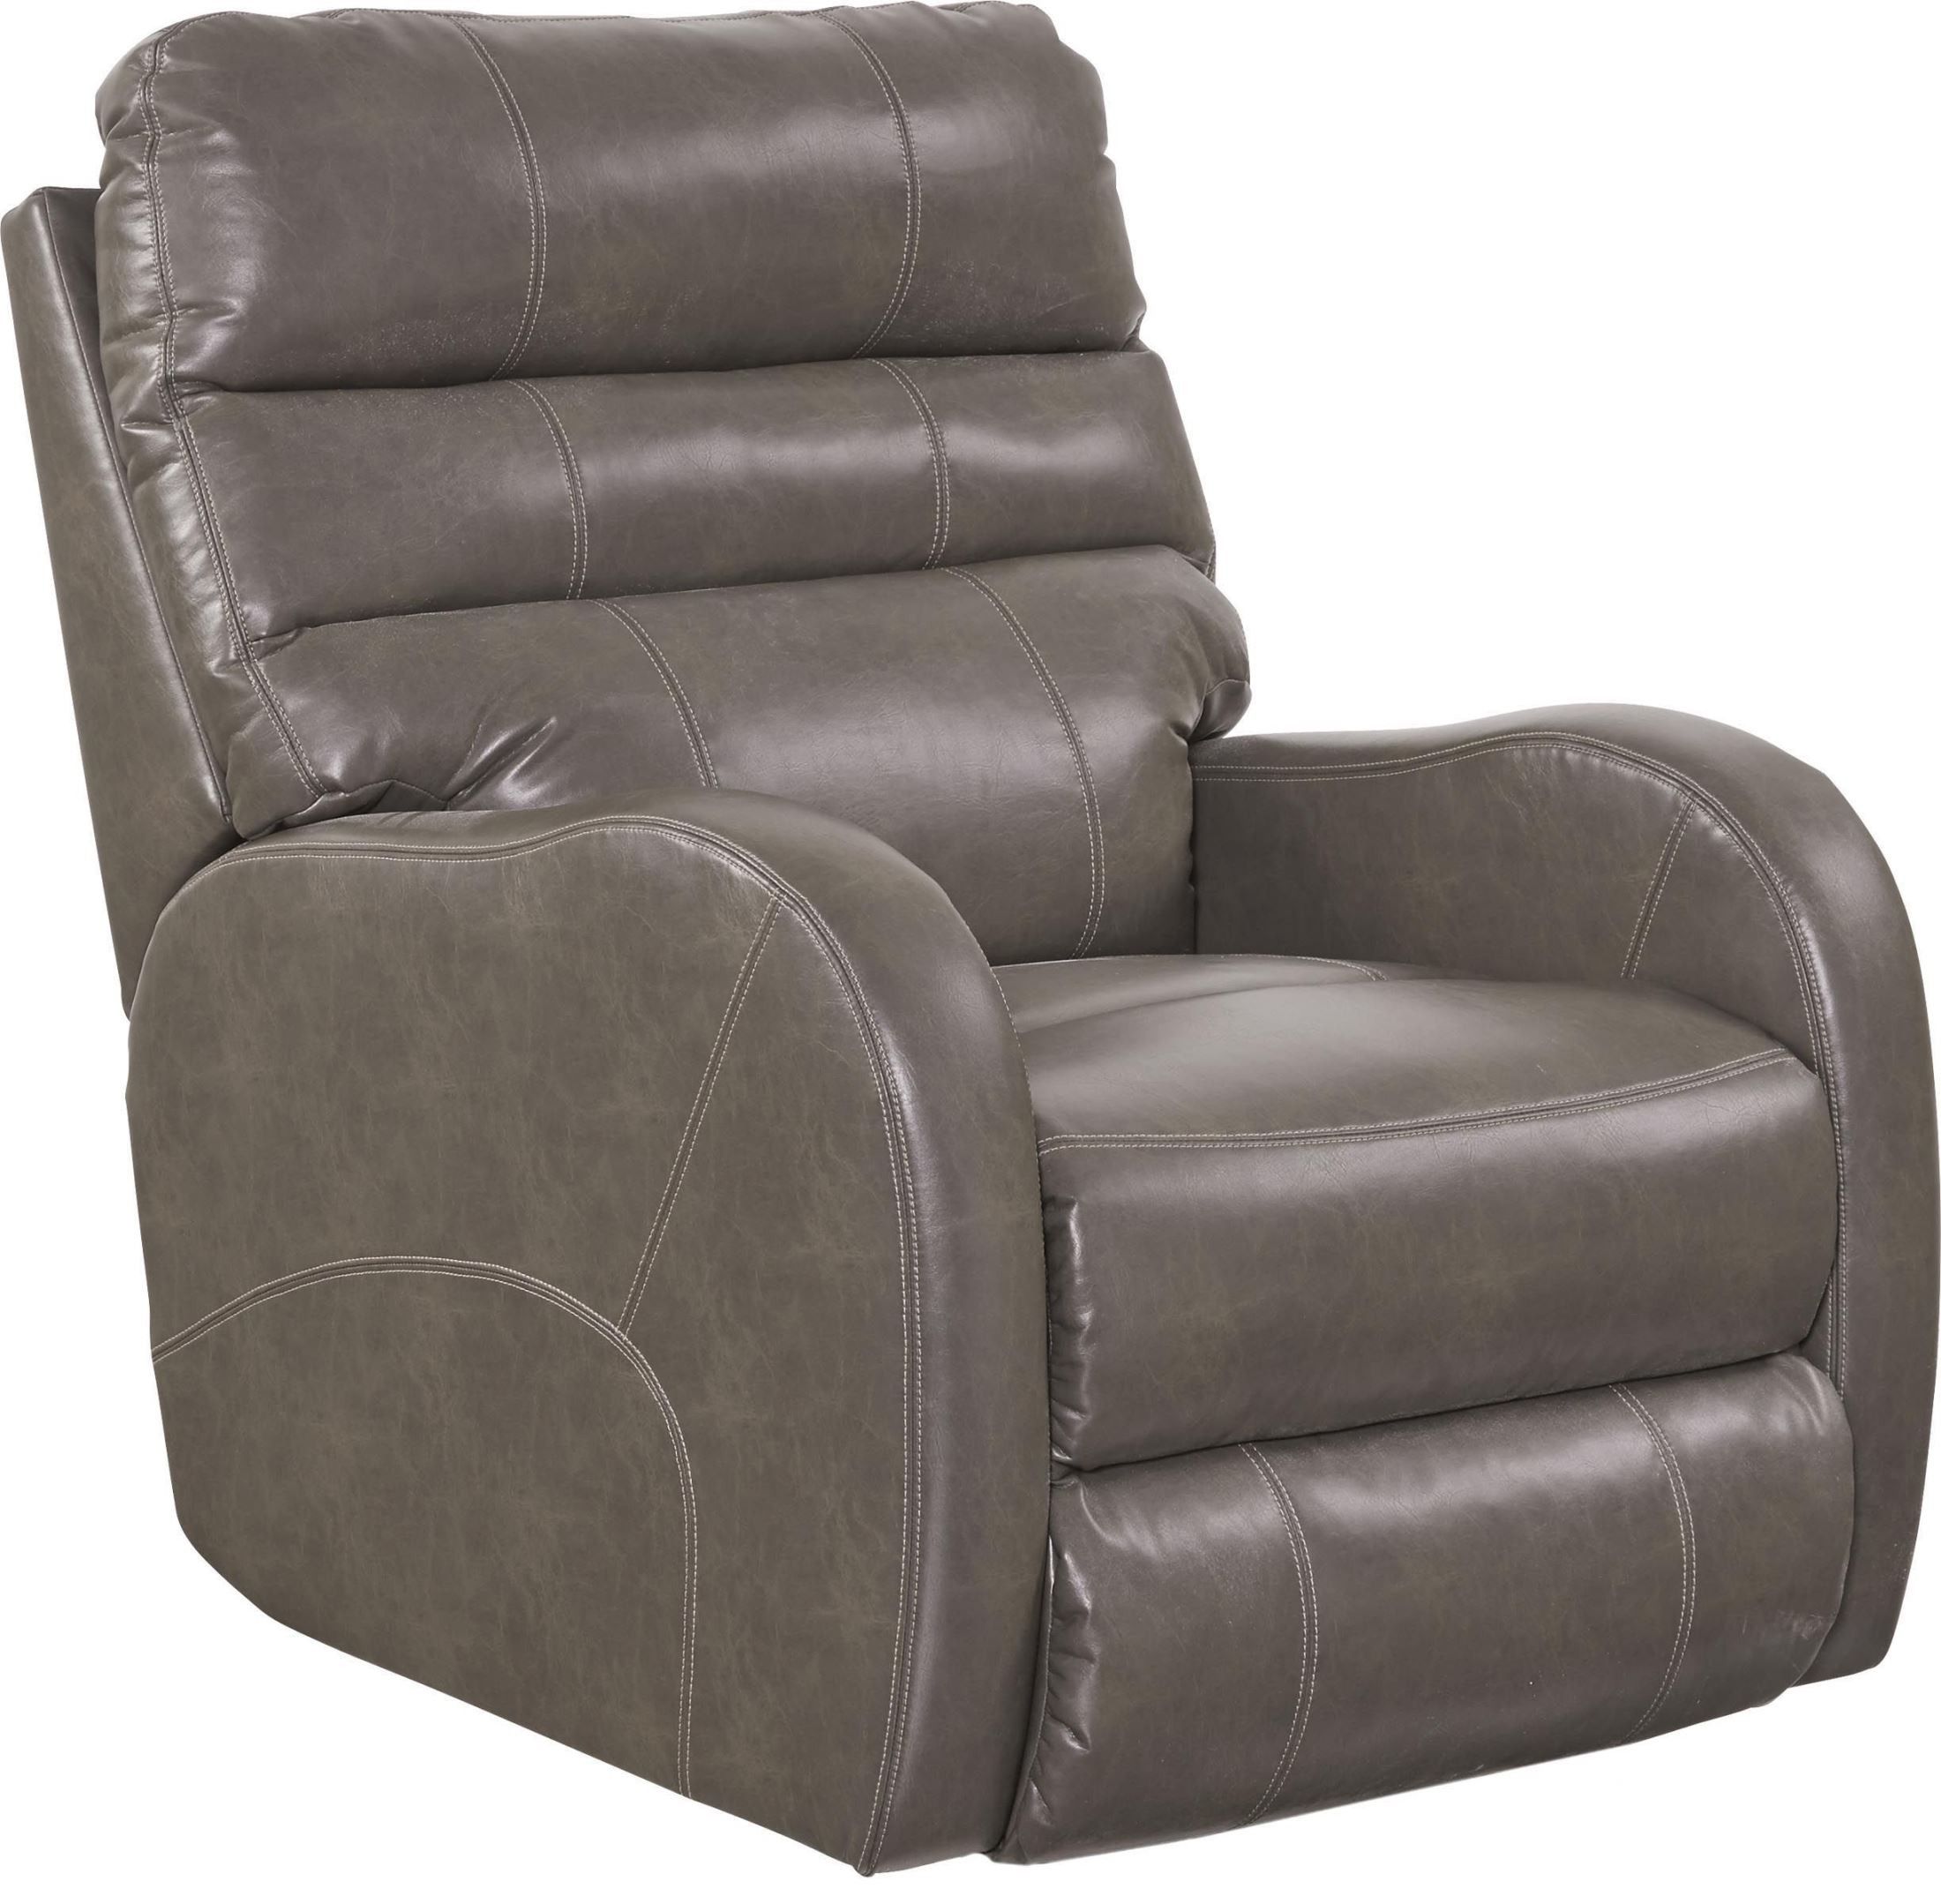 Searcy Ash Wall Hugger Power Recliner From Catnapper 647474000000 Coleman Furniture